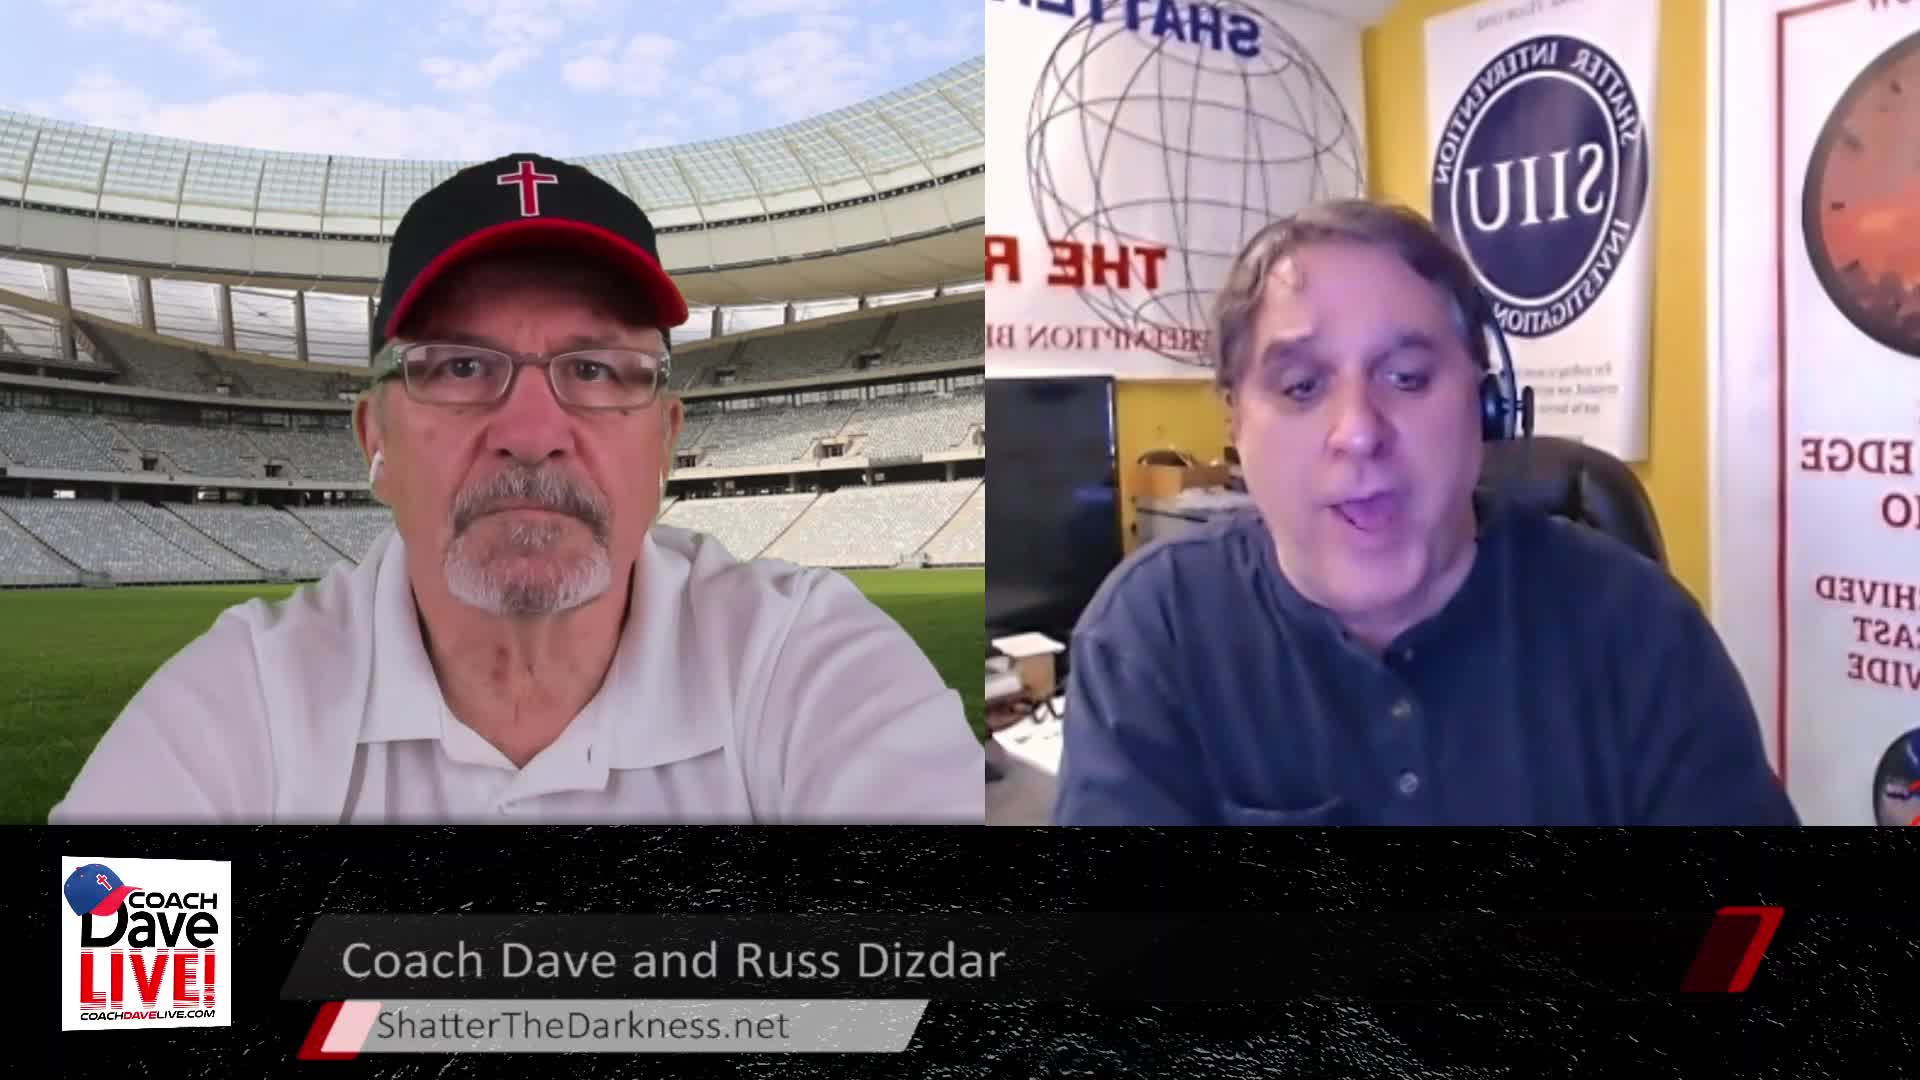 Coach Dave LIVE | 4-8-2021 | FIGHTING DEMONS WITH GUEST RUSS DIZDAR